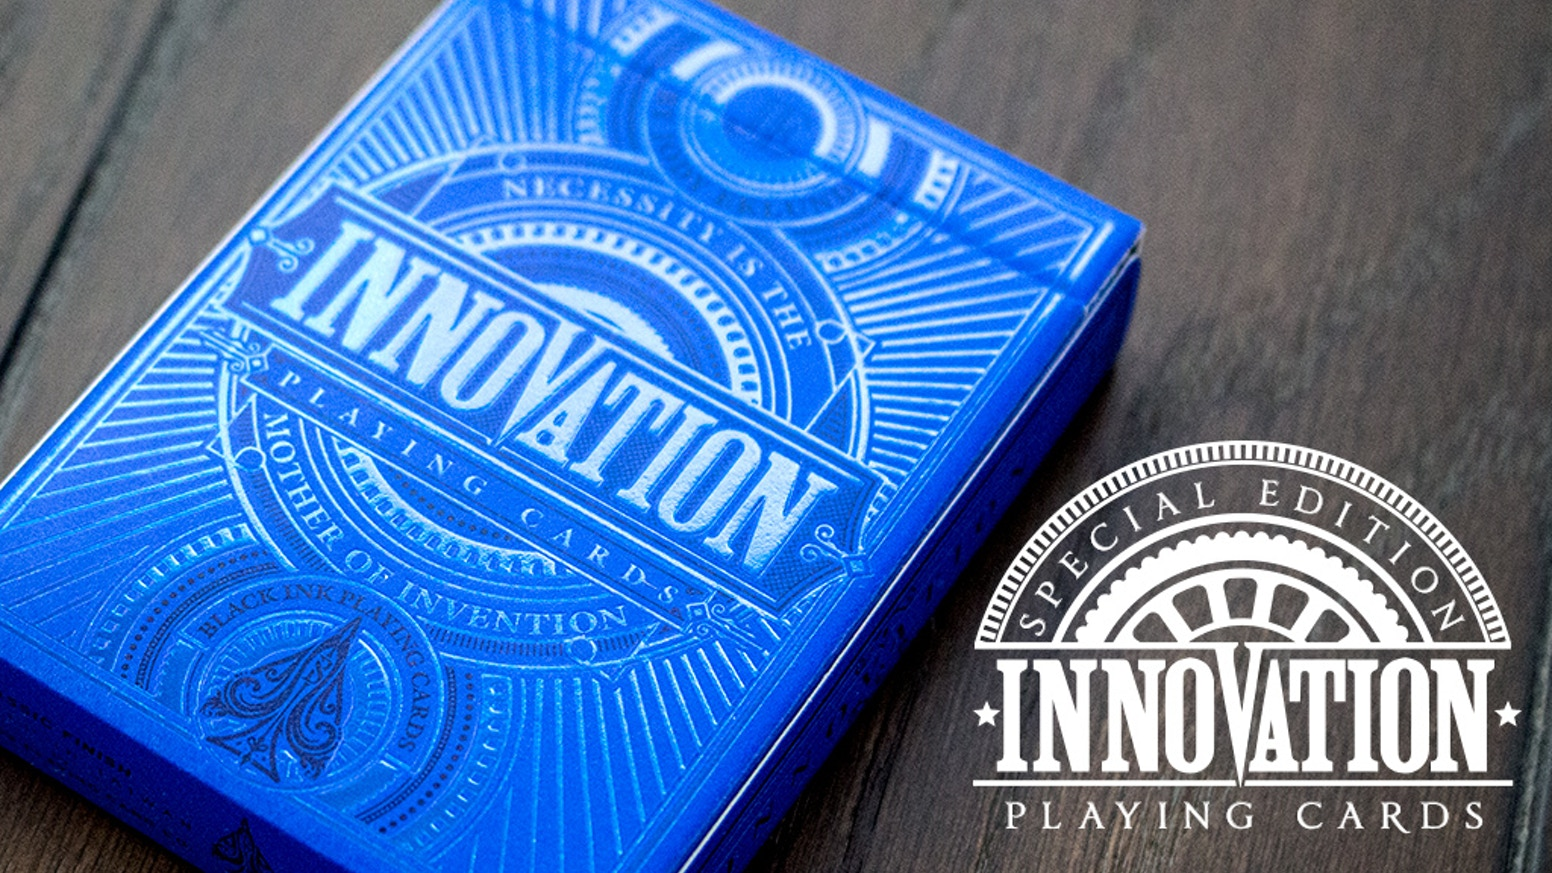 A SPECIAL EDITION of the highly sought after Innovation Playing Cards.